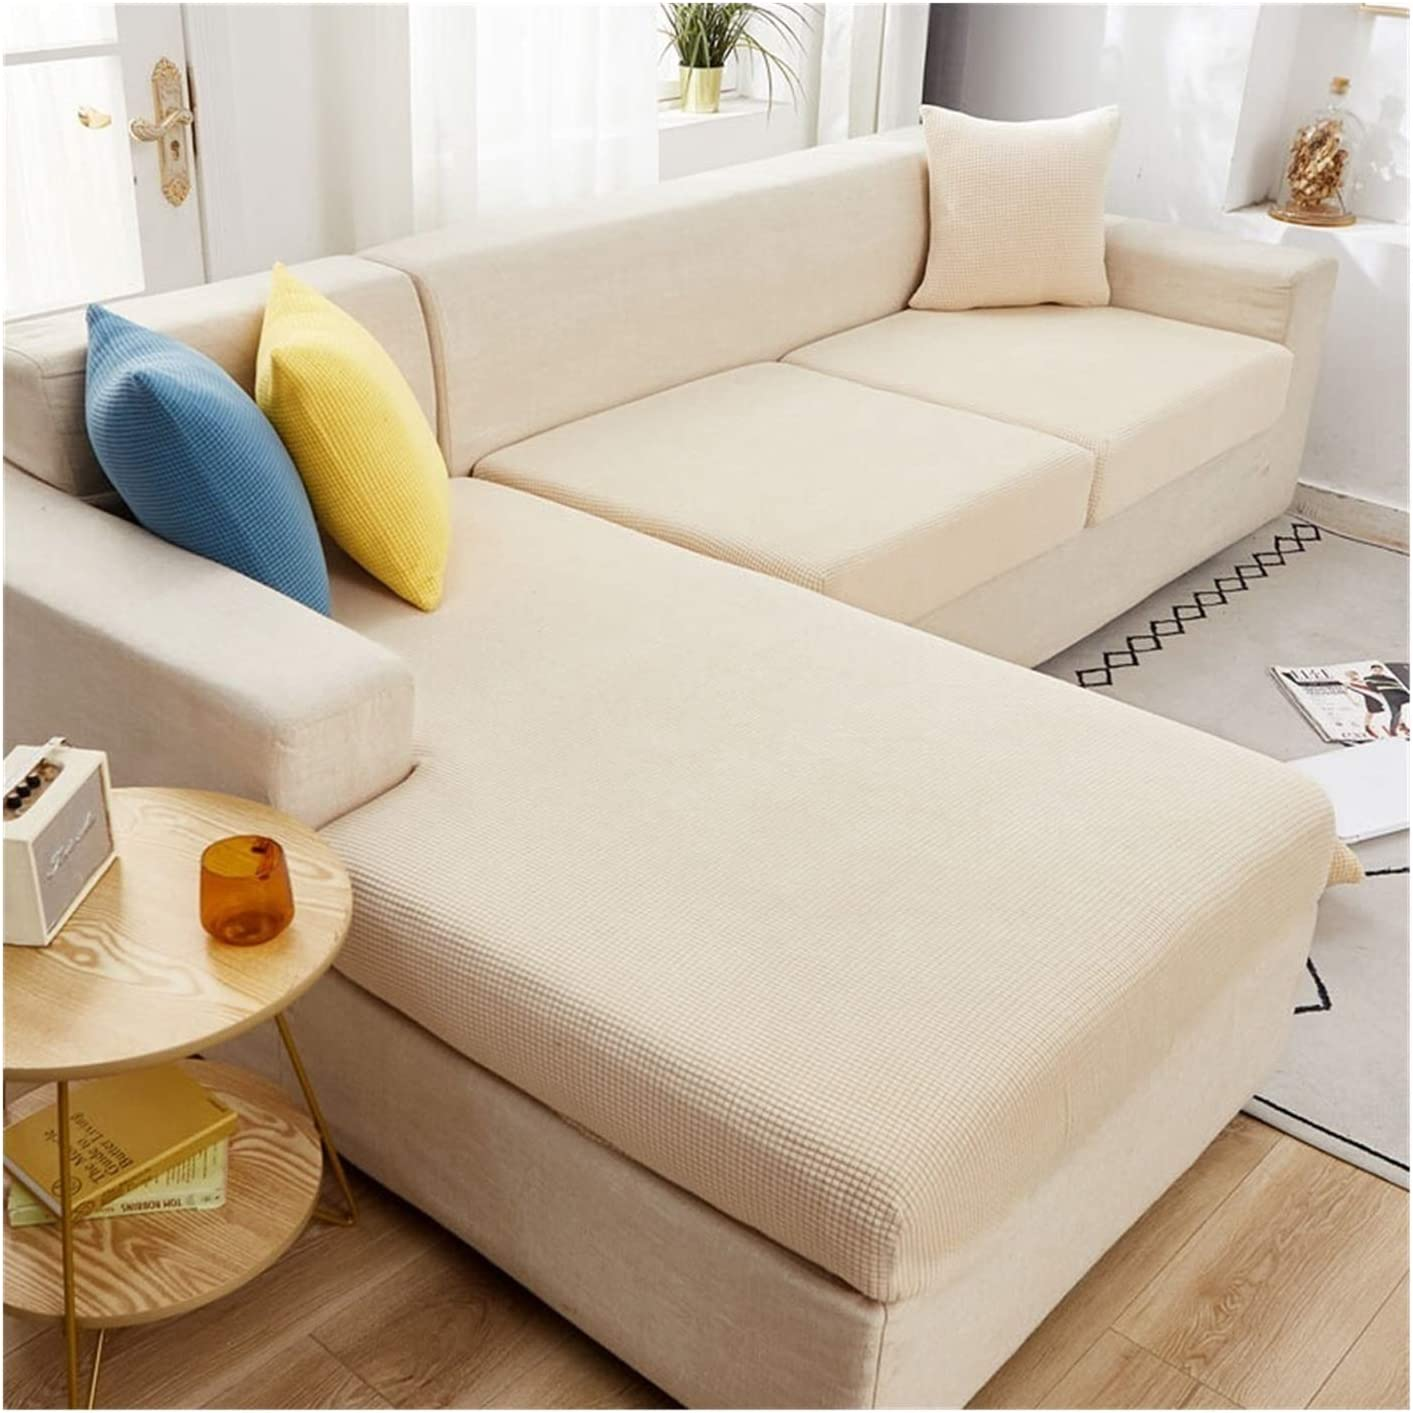 JPMSB Soft Max 64% OFF Plush Sectional Fort Worth Mall Corner Cushion Cover Couch Sofa Seat